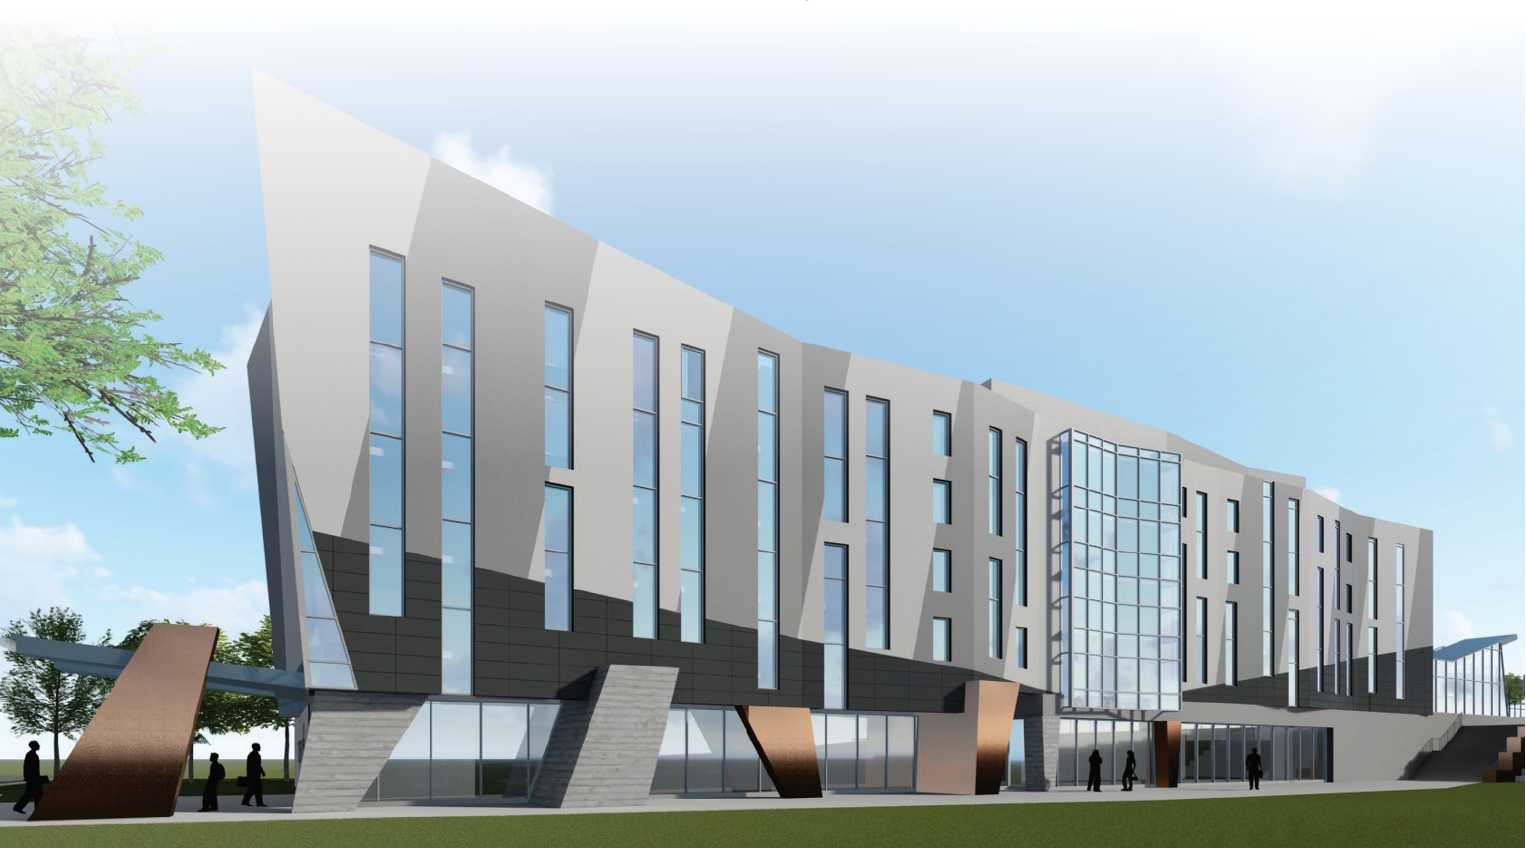 Trent University Durham GTA - New Building